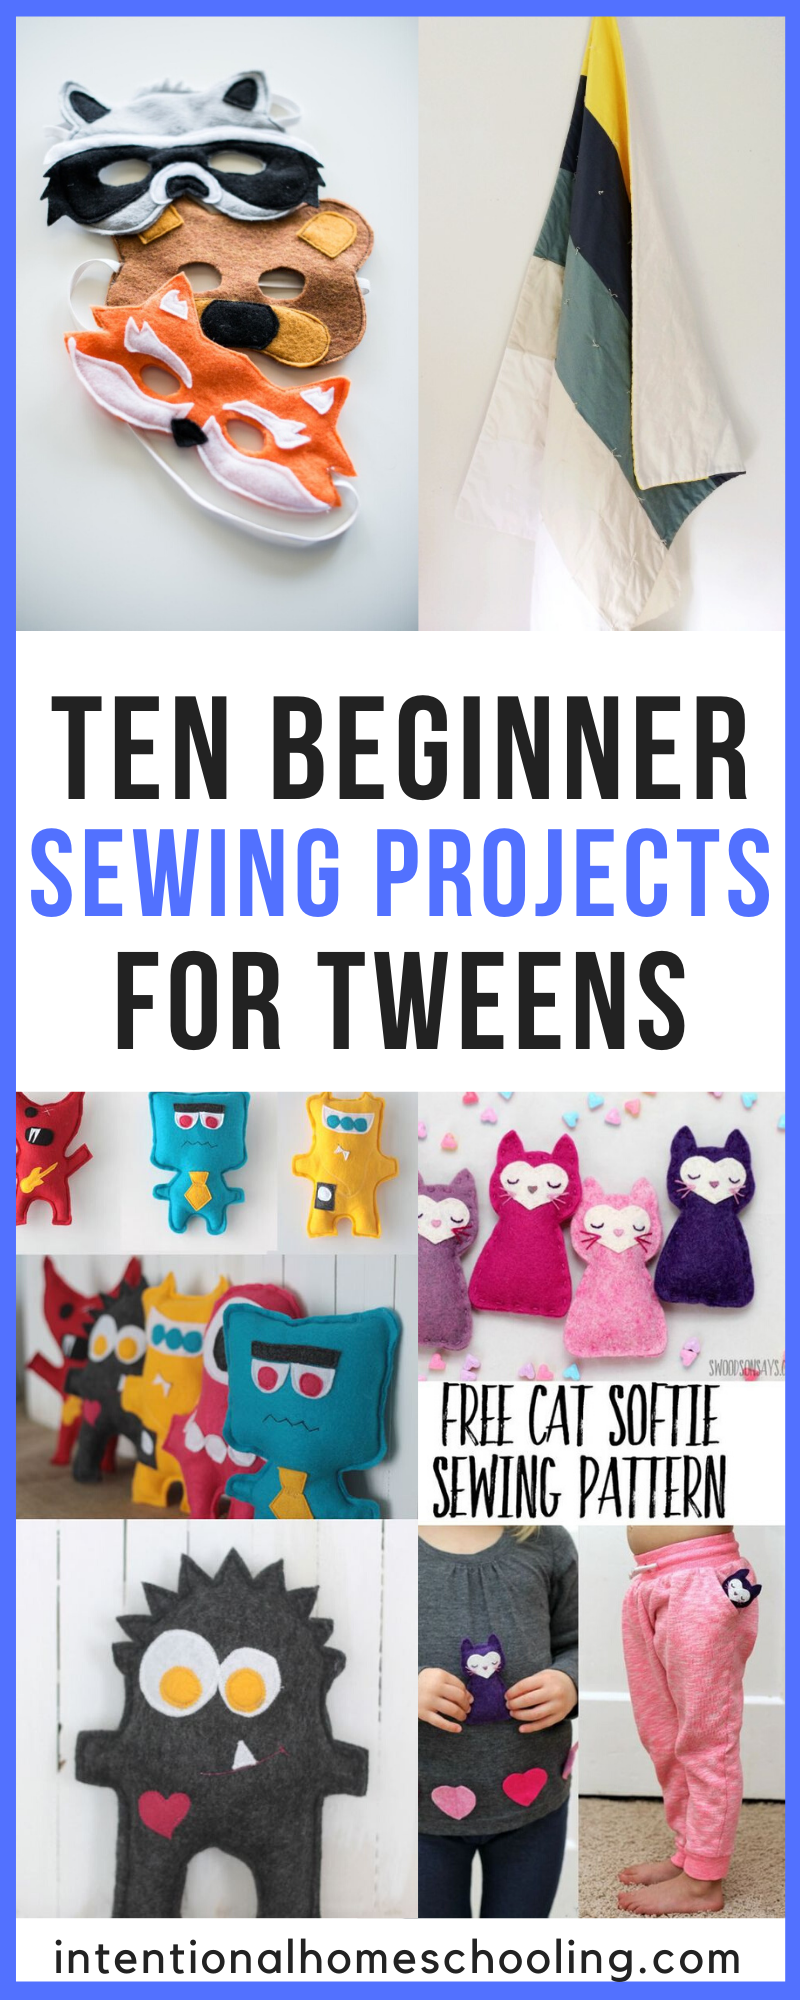 Ten Beginner Sewing Projects - Perfect for Tweens - Homeschool Handicraft Ideas